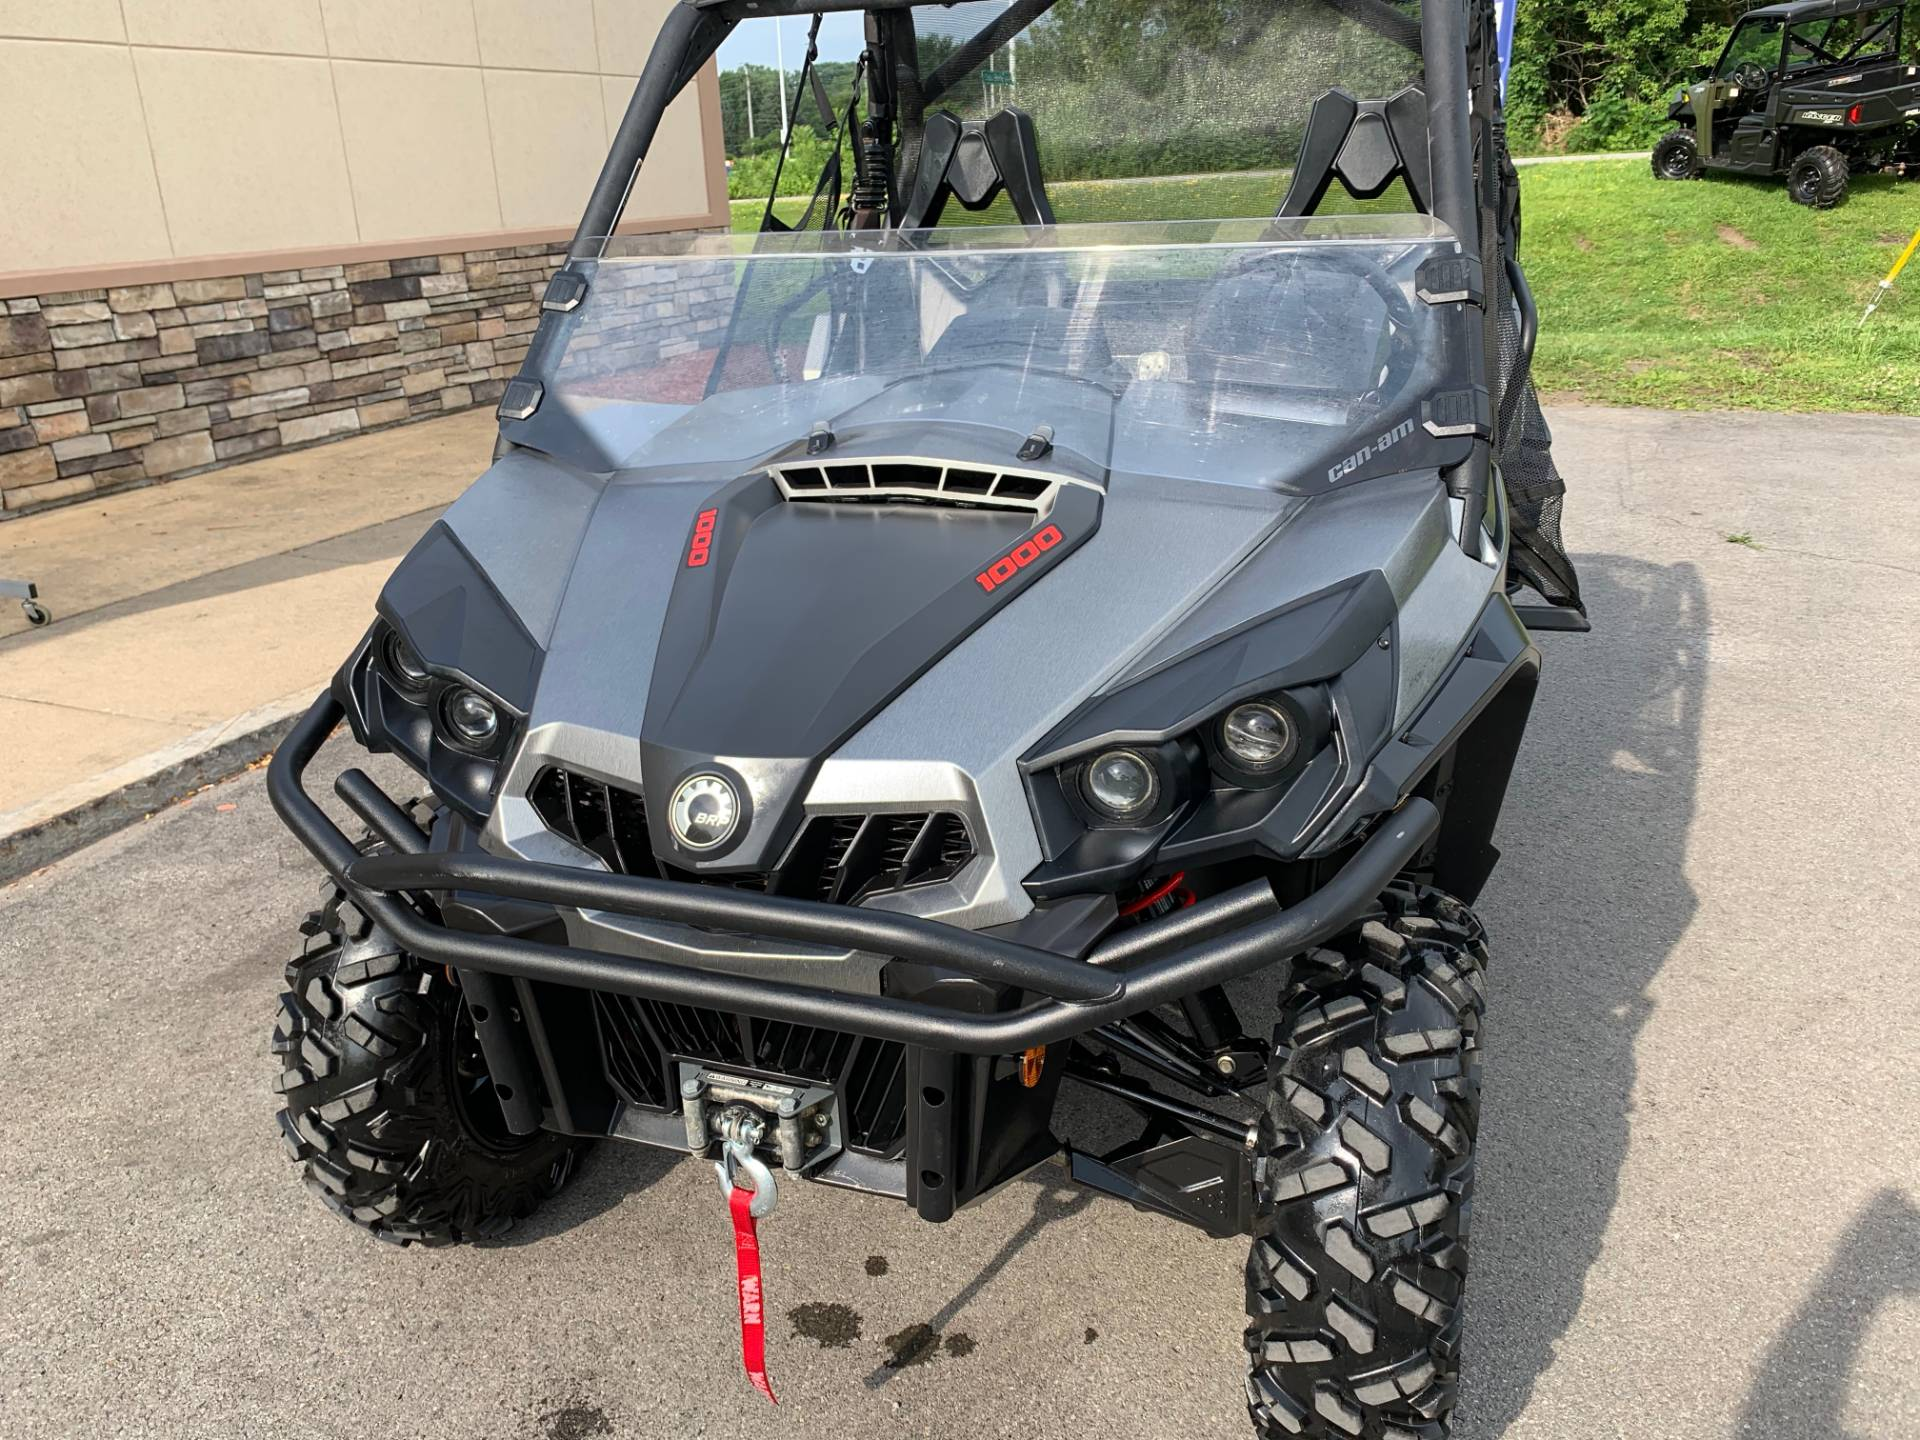 2017 Can-Am Commander XT 1000 in Herkimer, New York - Photo 17